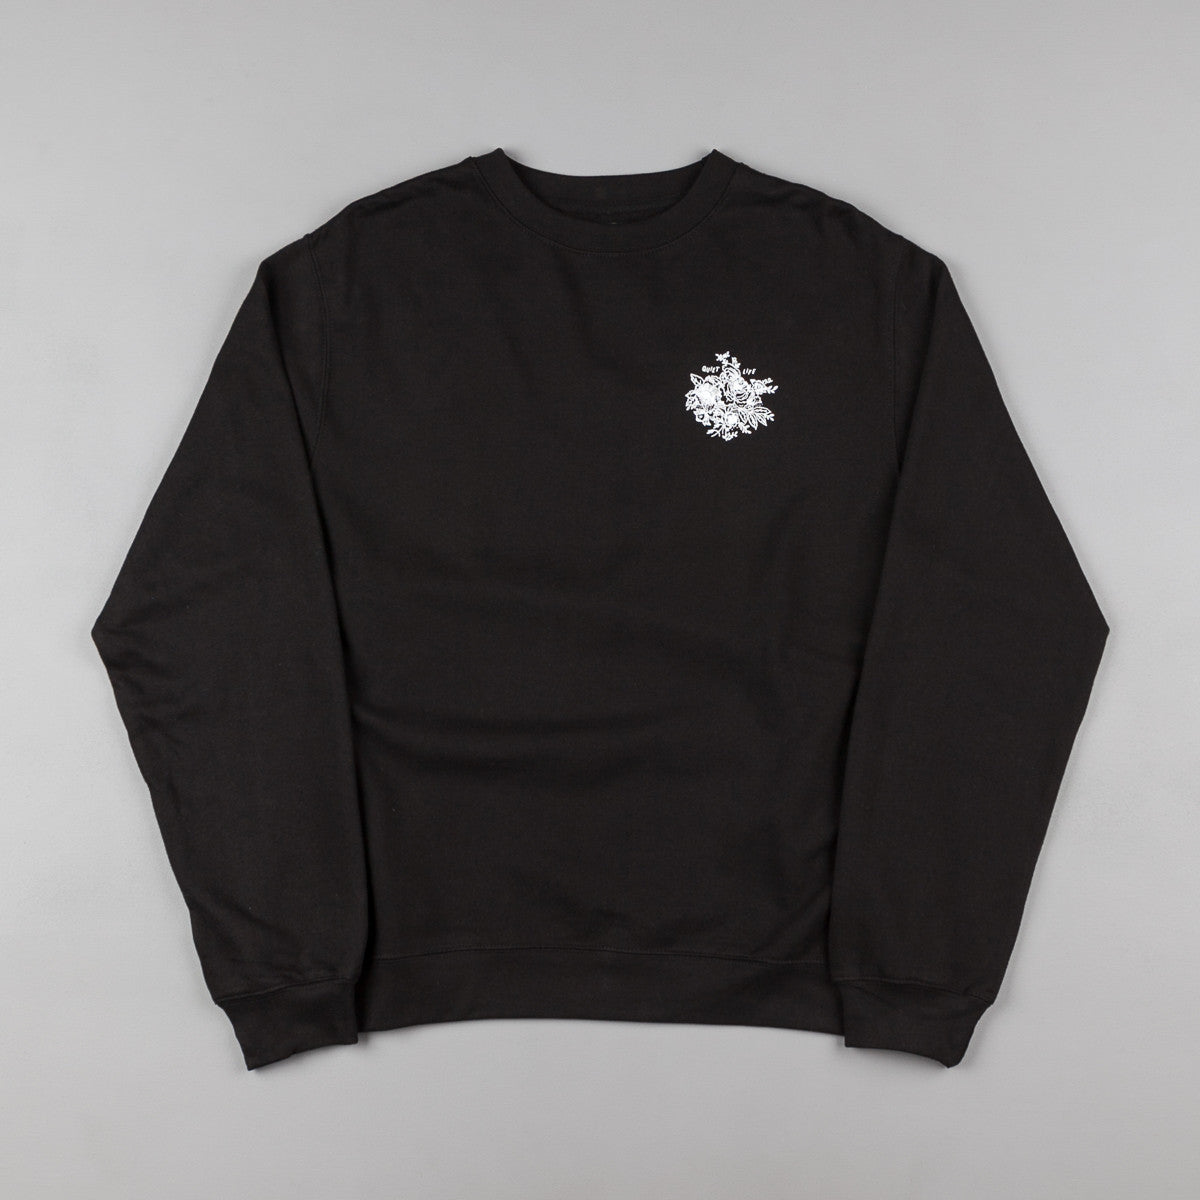 The Quiet Life Duggan Crewneck Sweatshirt - Black